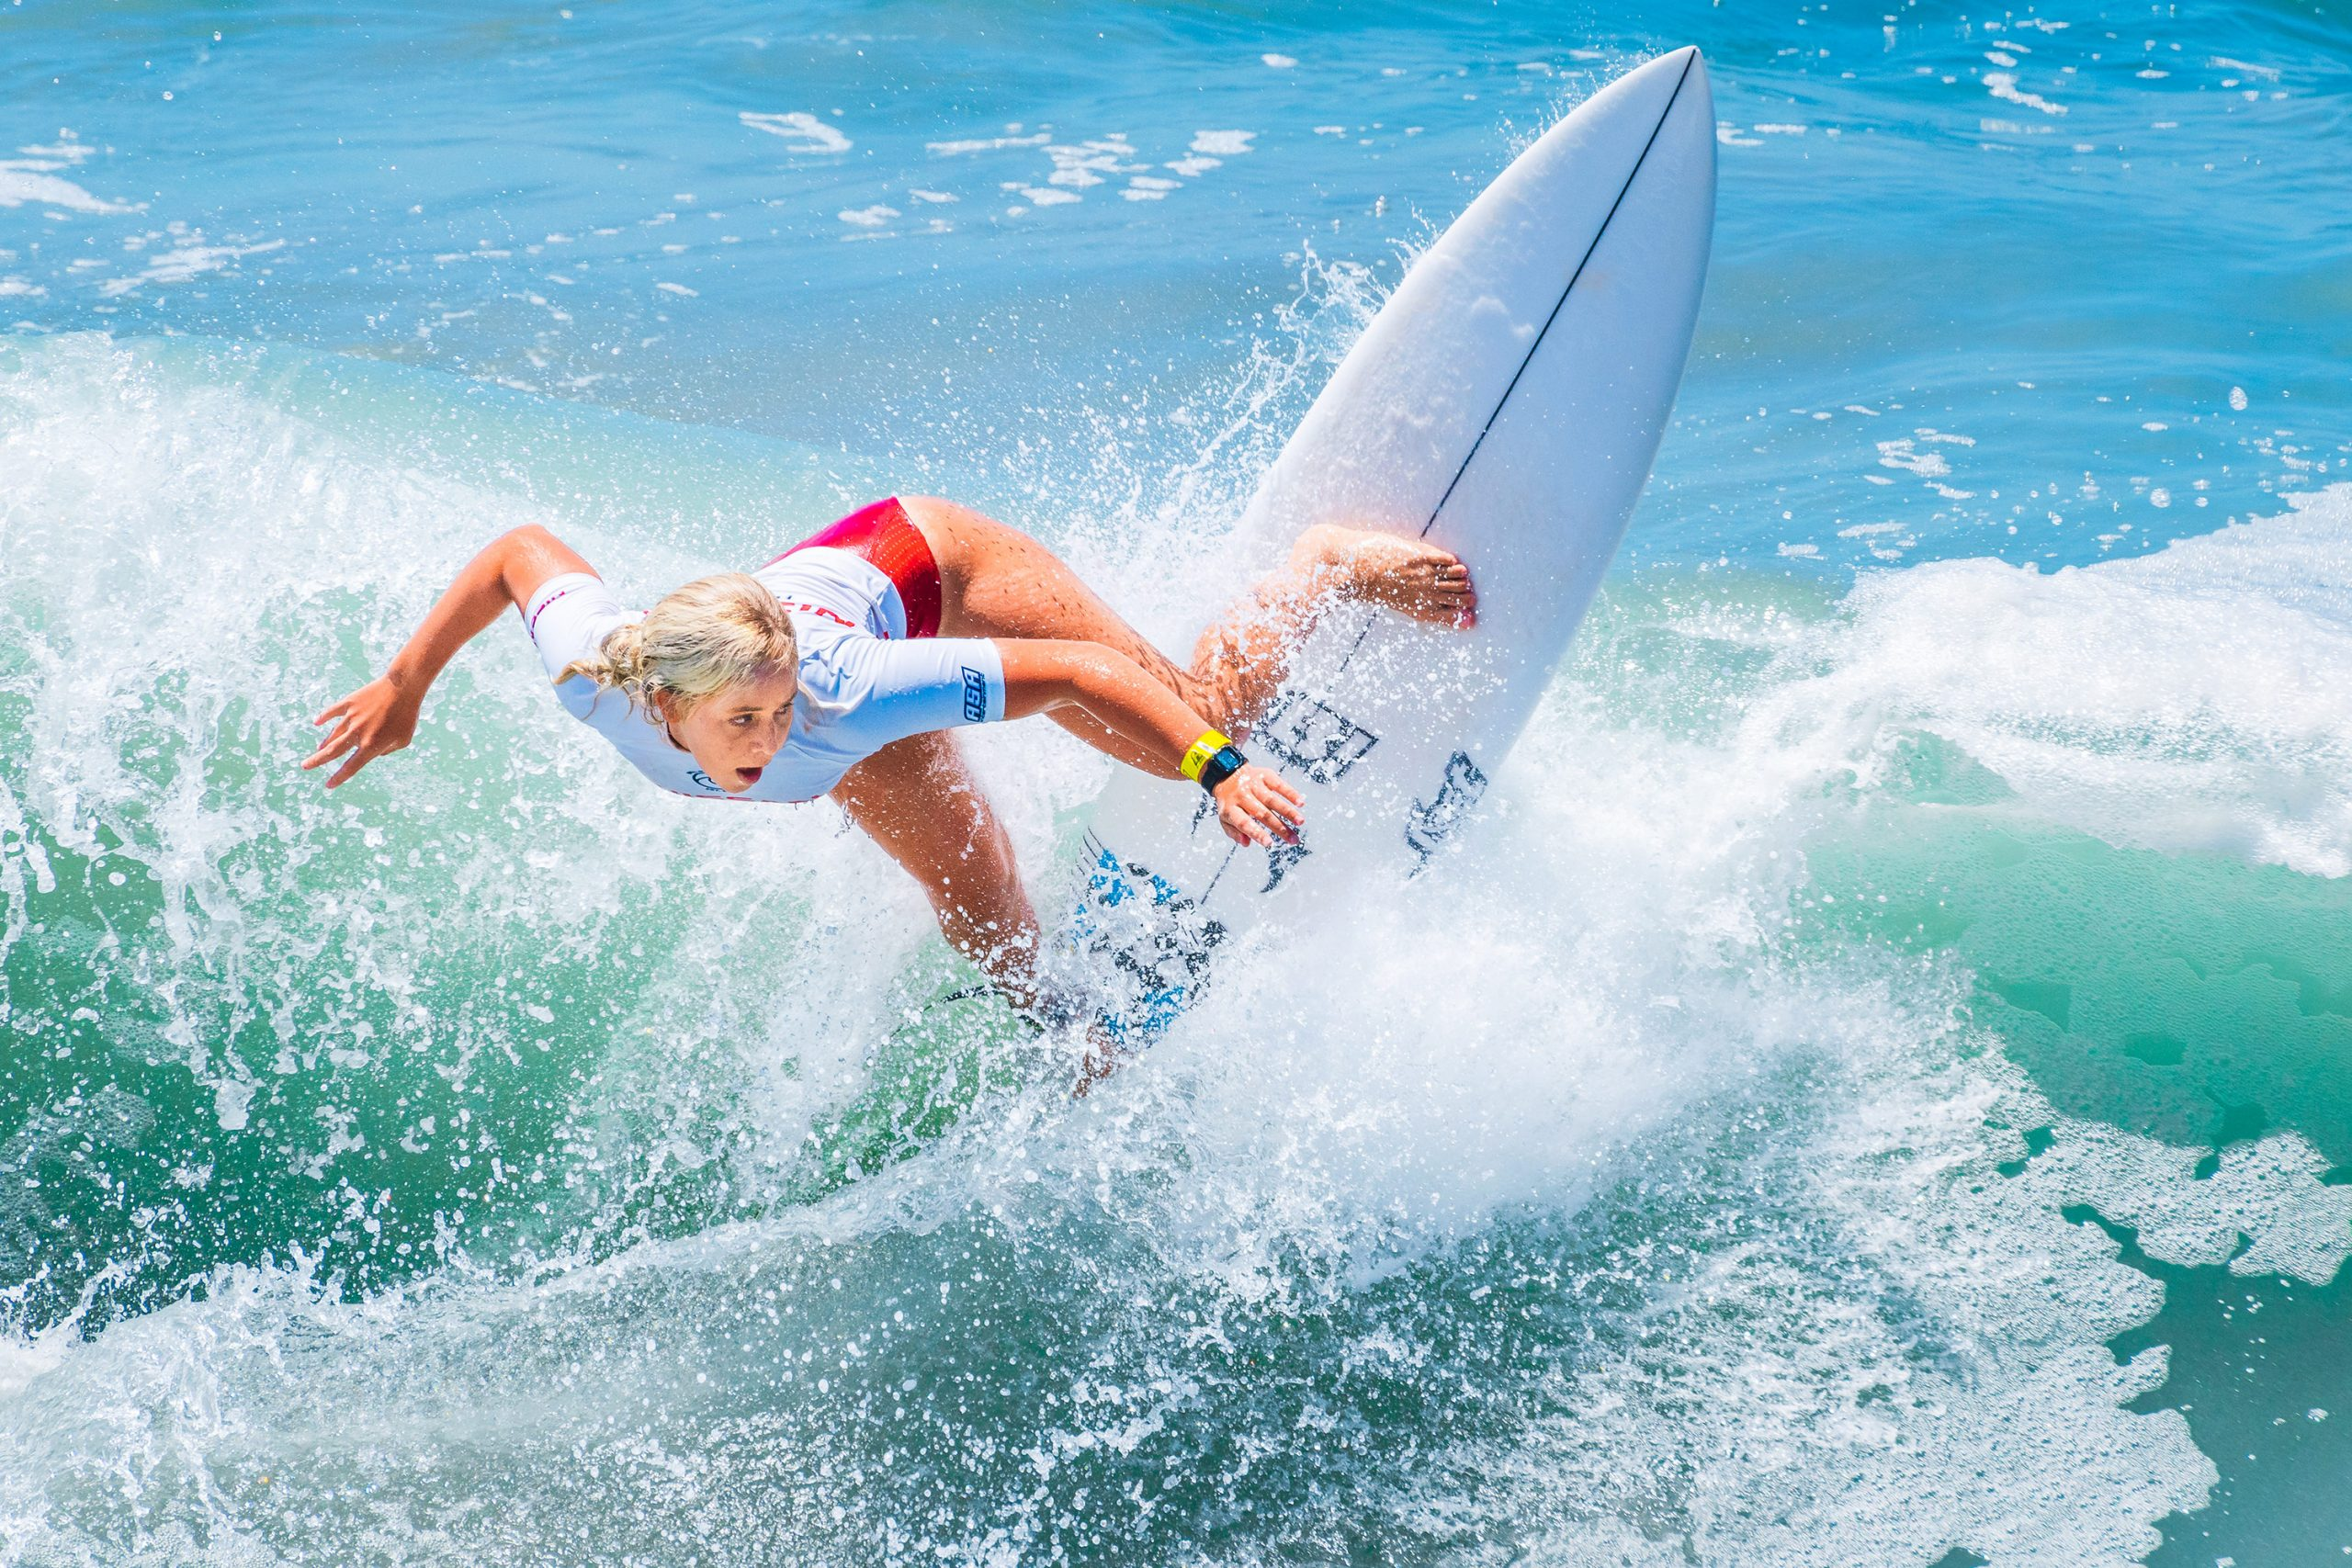 Supergirl Pro surfing competition